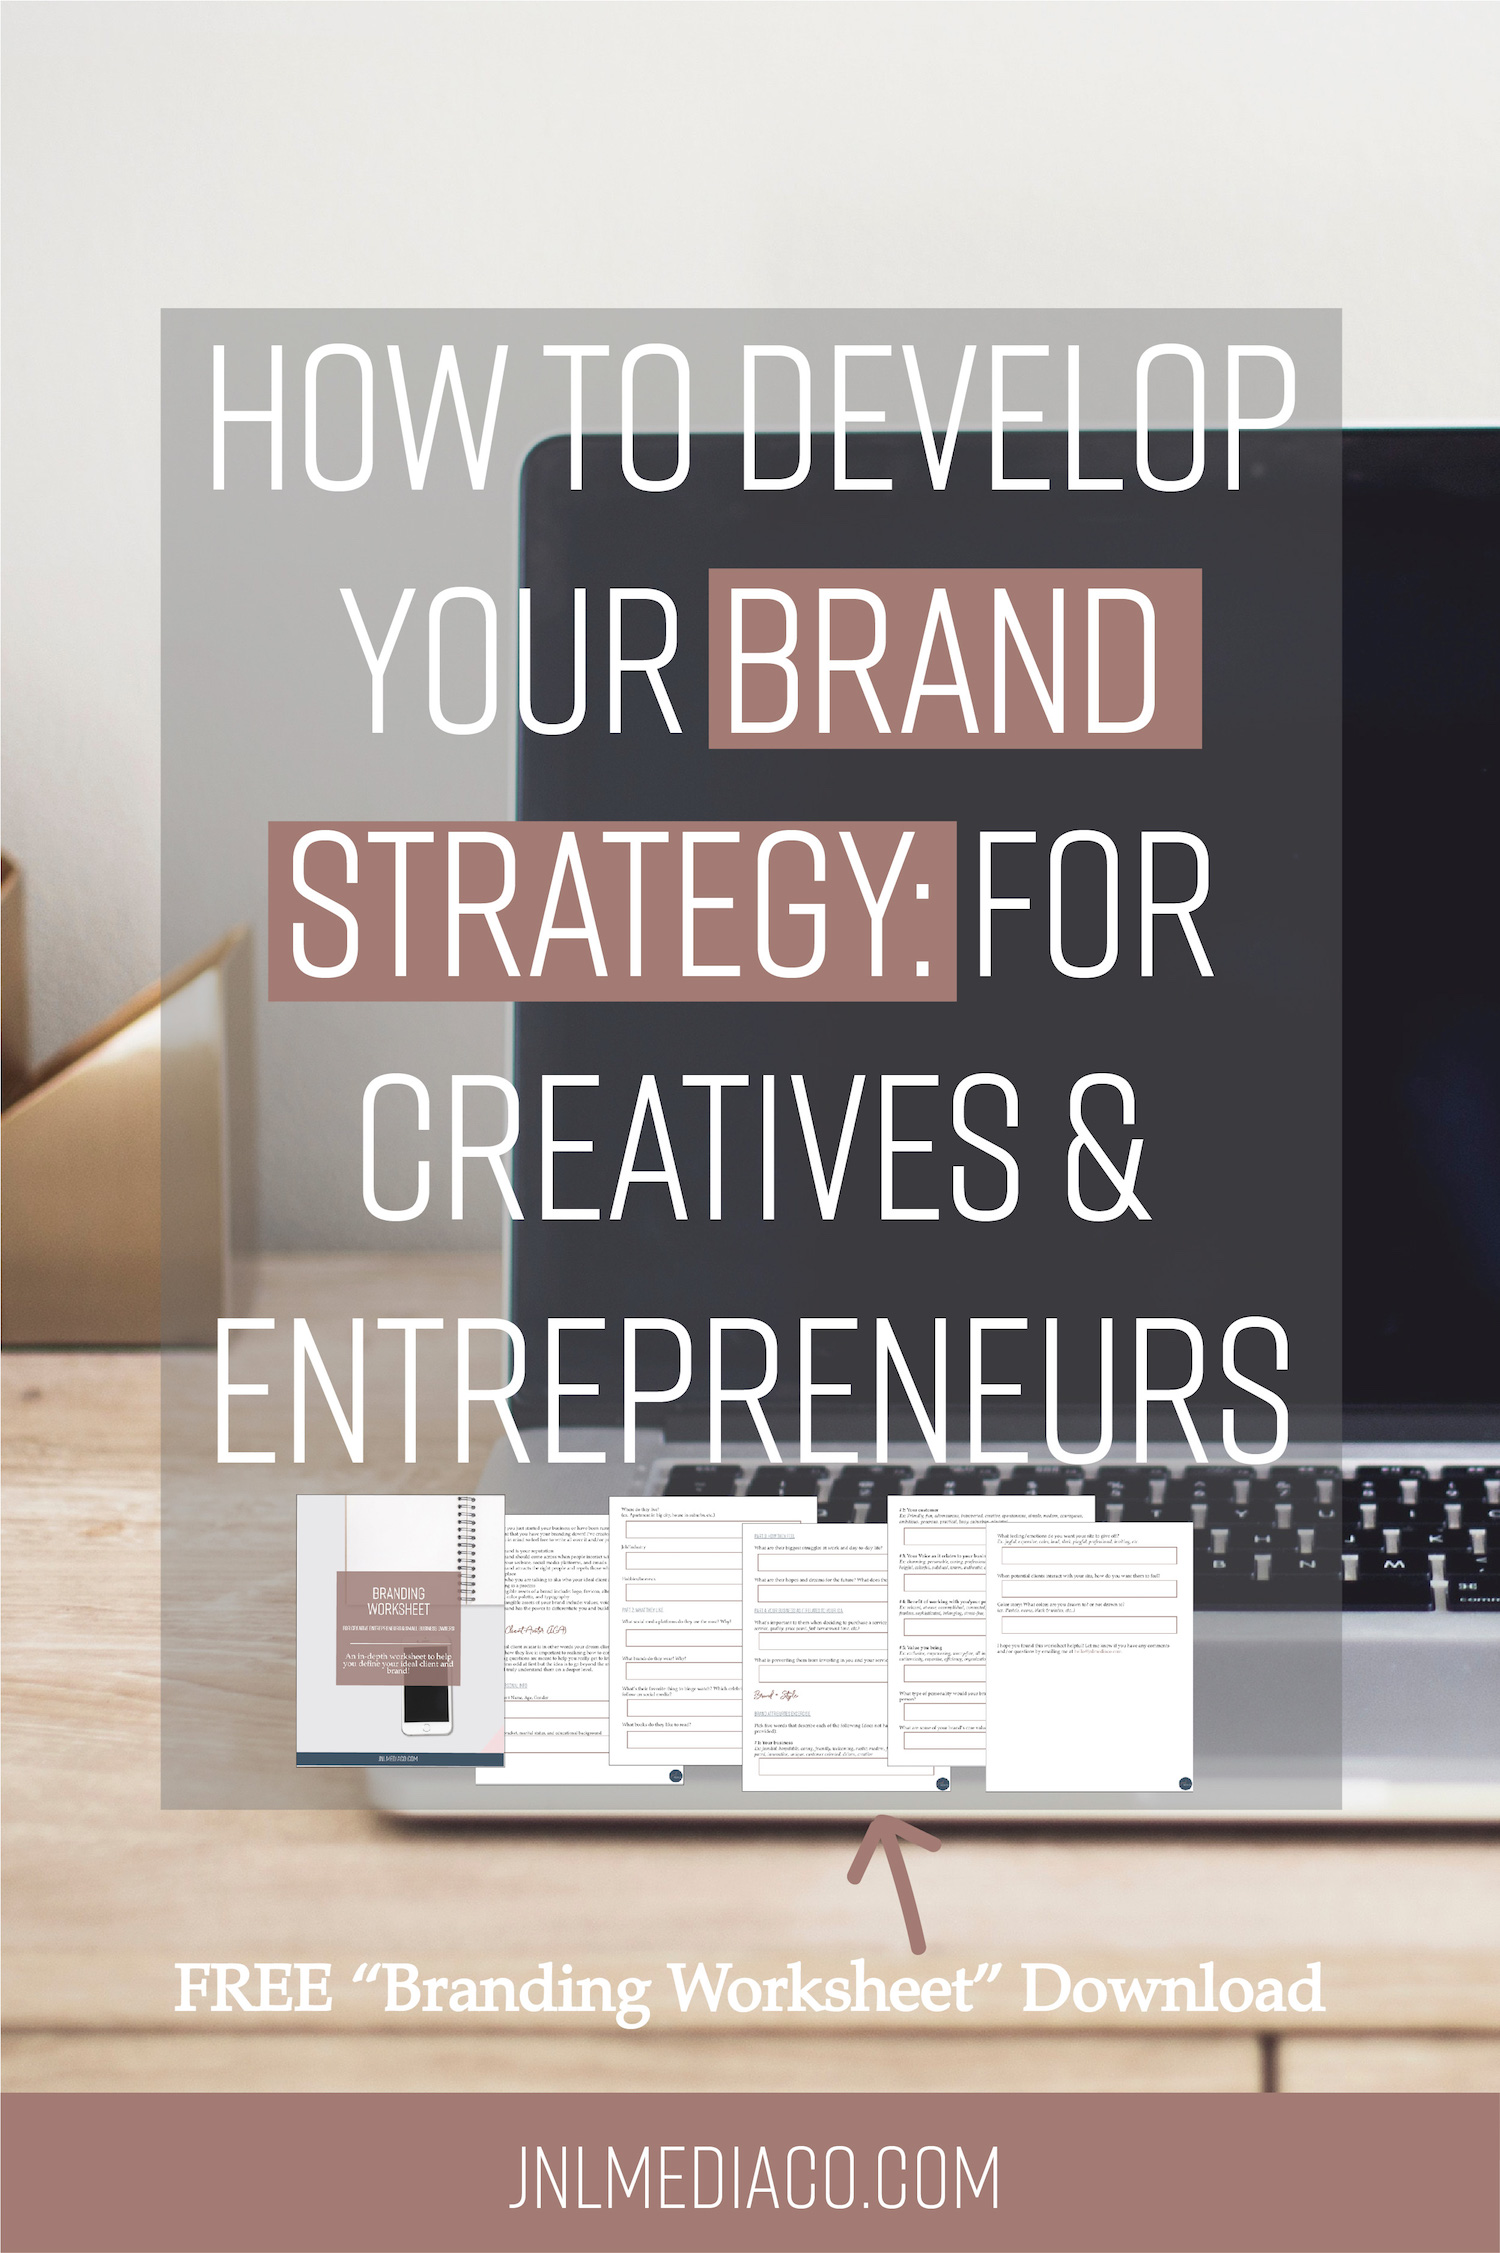 Branding! Branding! Branding! You hear it everywhere and know it's important but do you actually have a Brand Strategy in place?. Coming up with a business and services/products is the easy part… anyone can do that but building a strong brand that wins customers over and sets you apart is where the real works comes in.